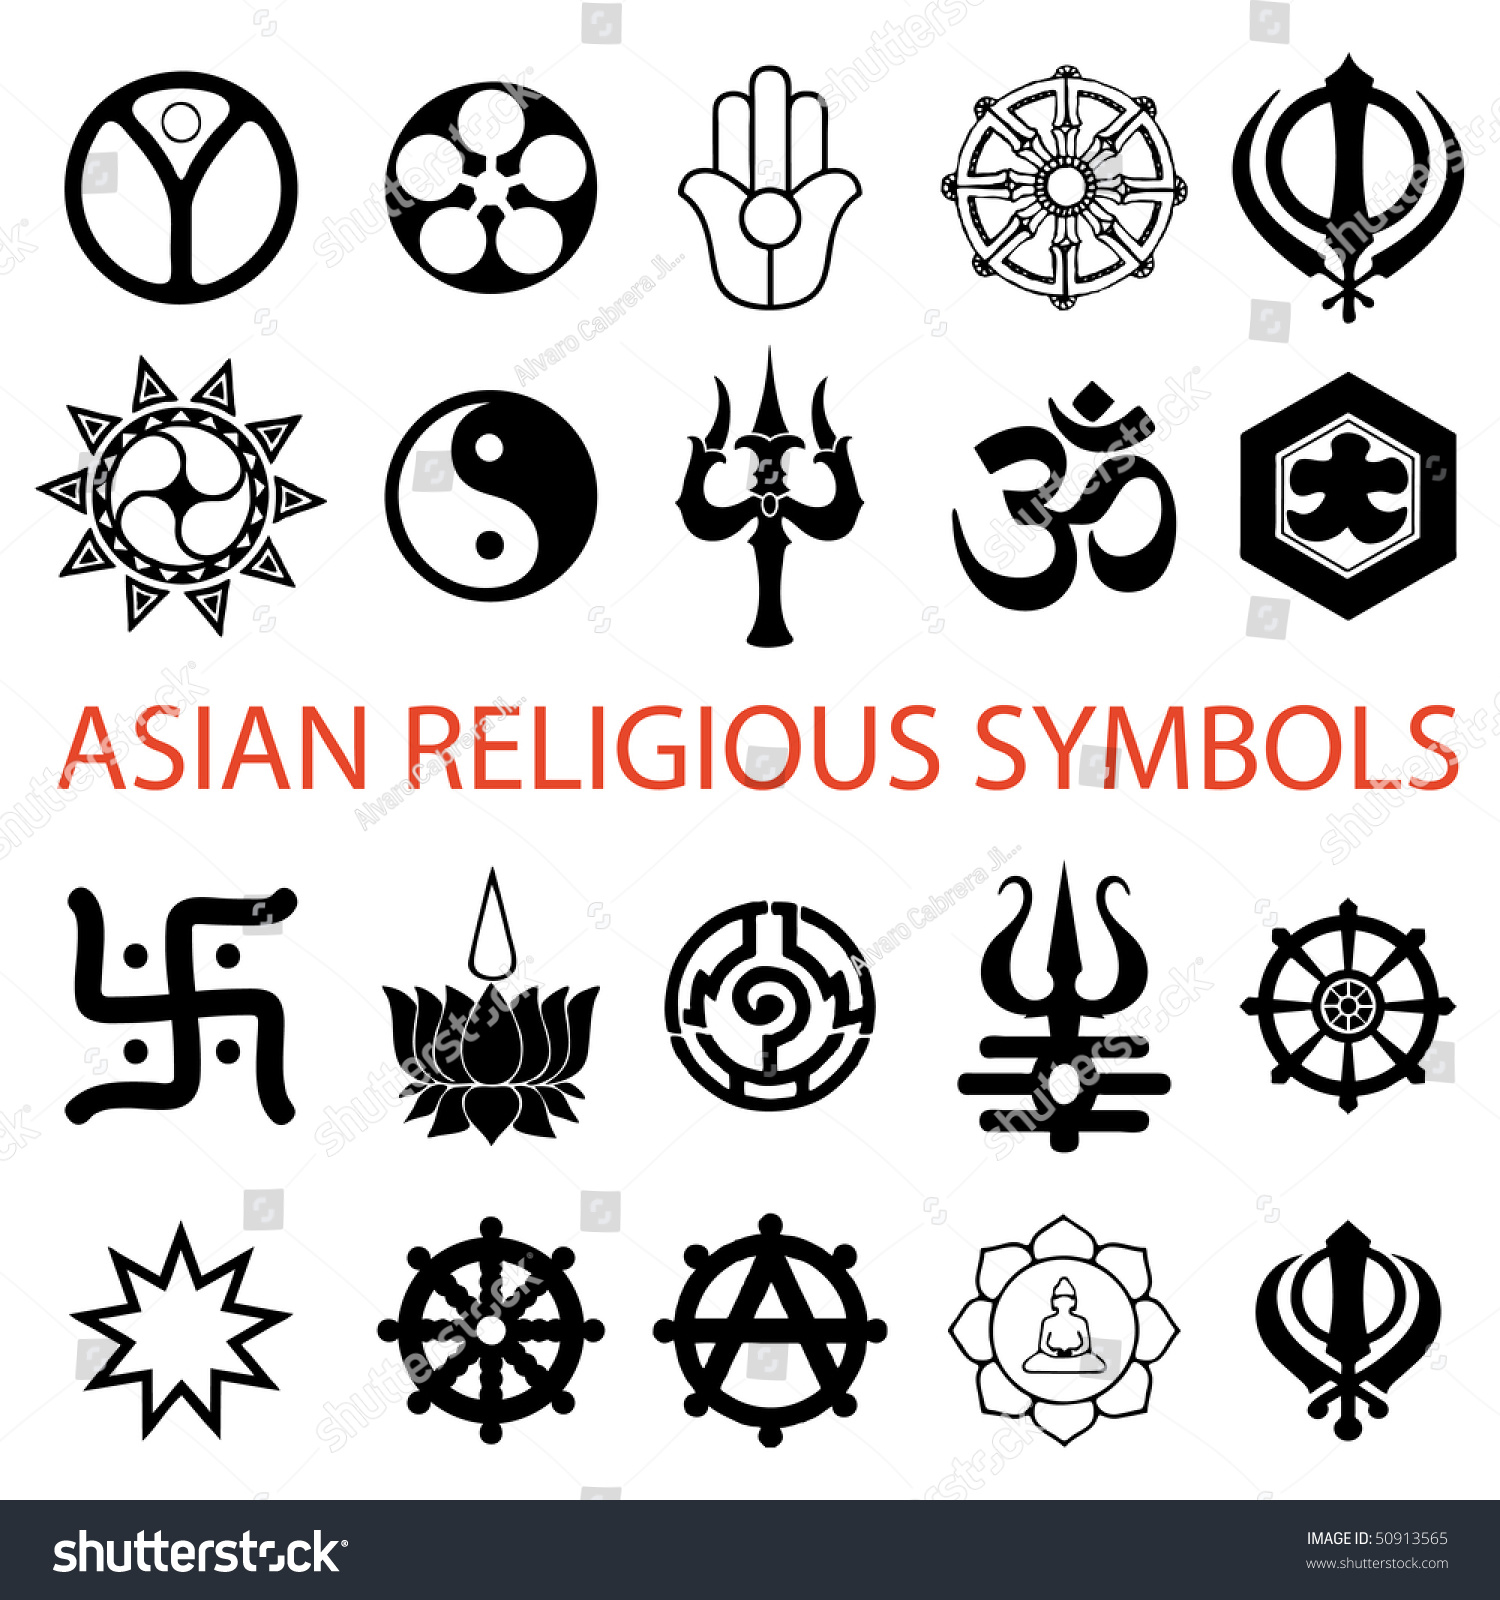 Vector Various Religious Symbols Asian Stock Vector